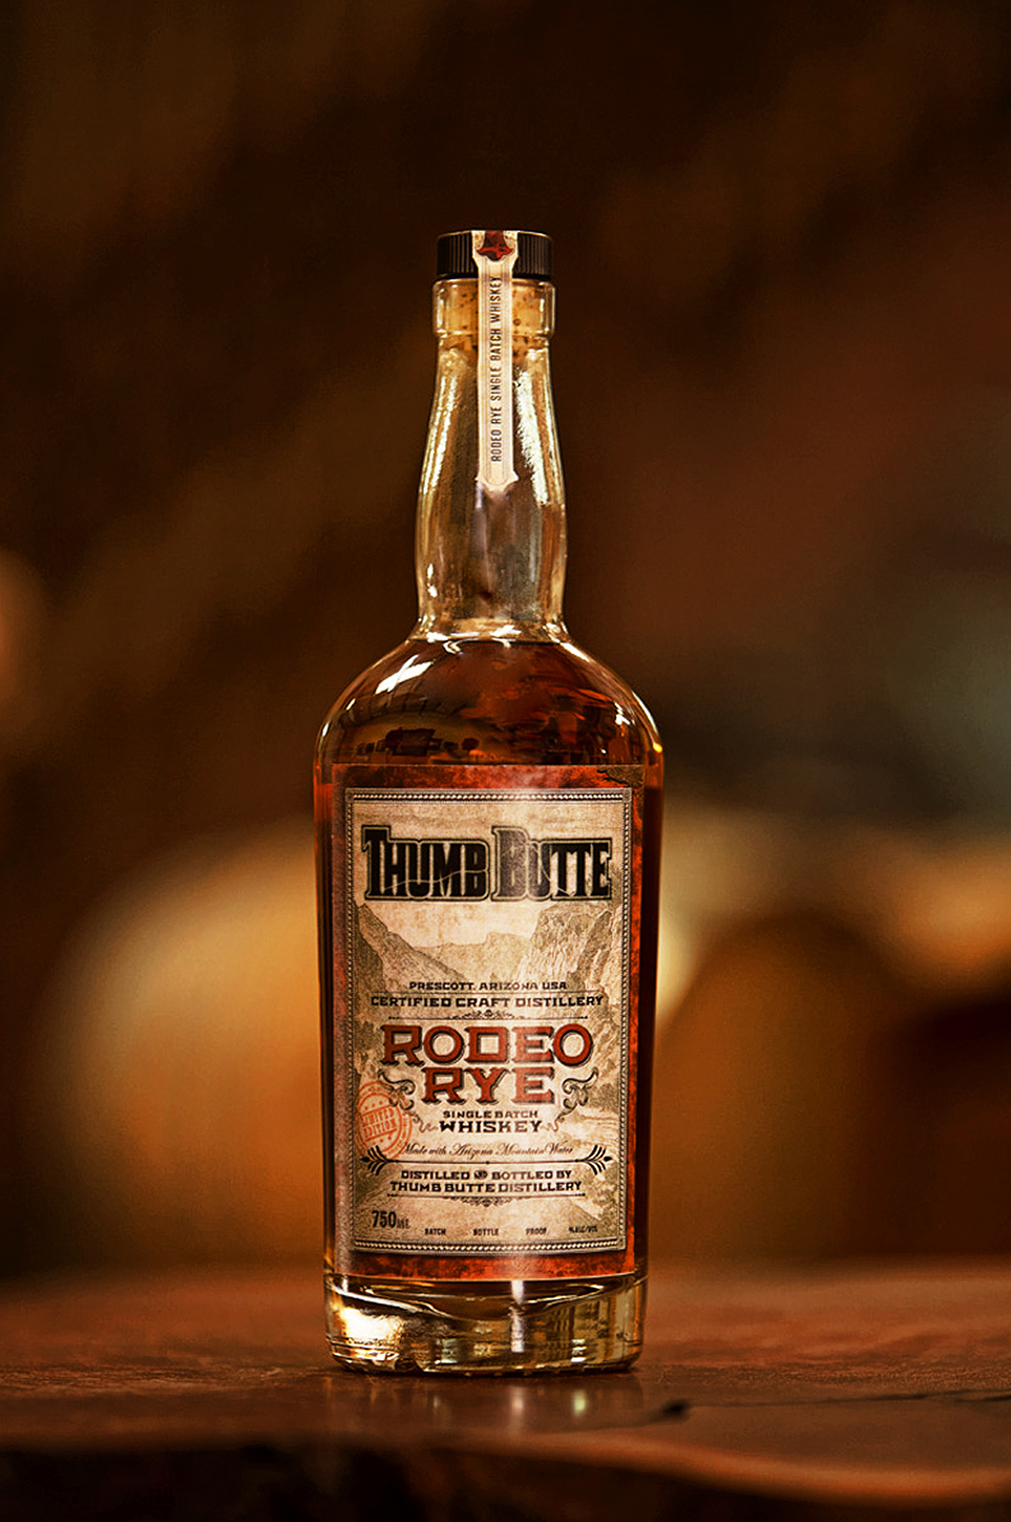 Label design for Thumb Butte Distillery Rodeo Rye Whiskey